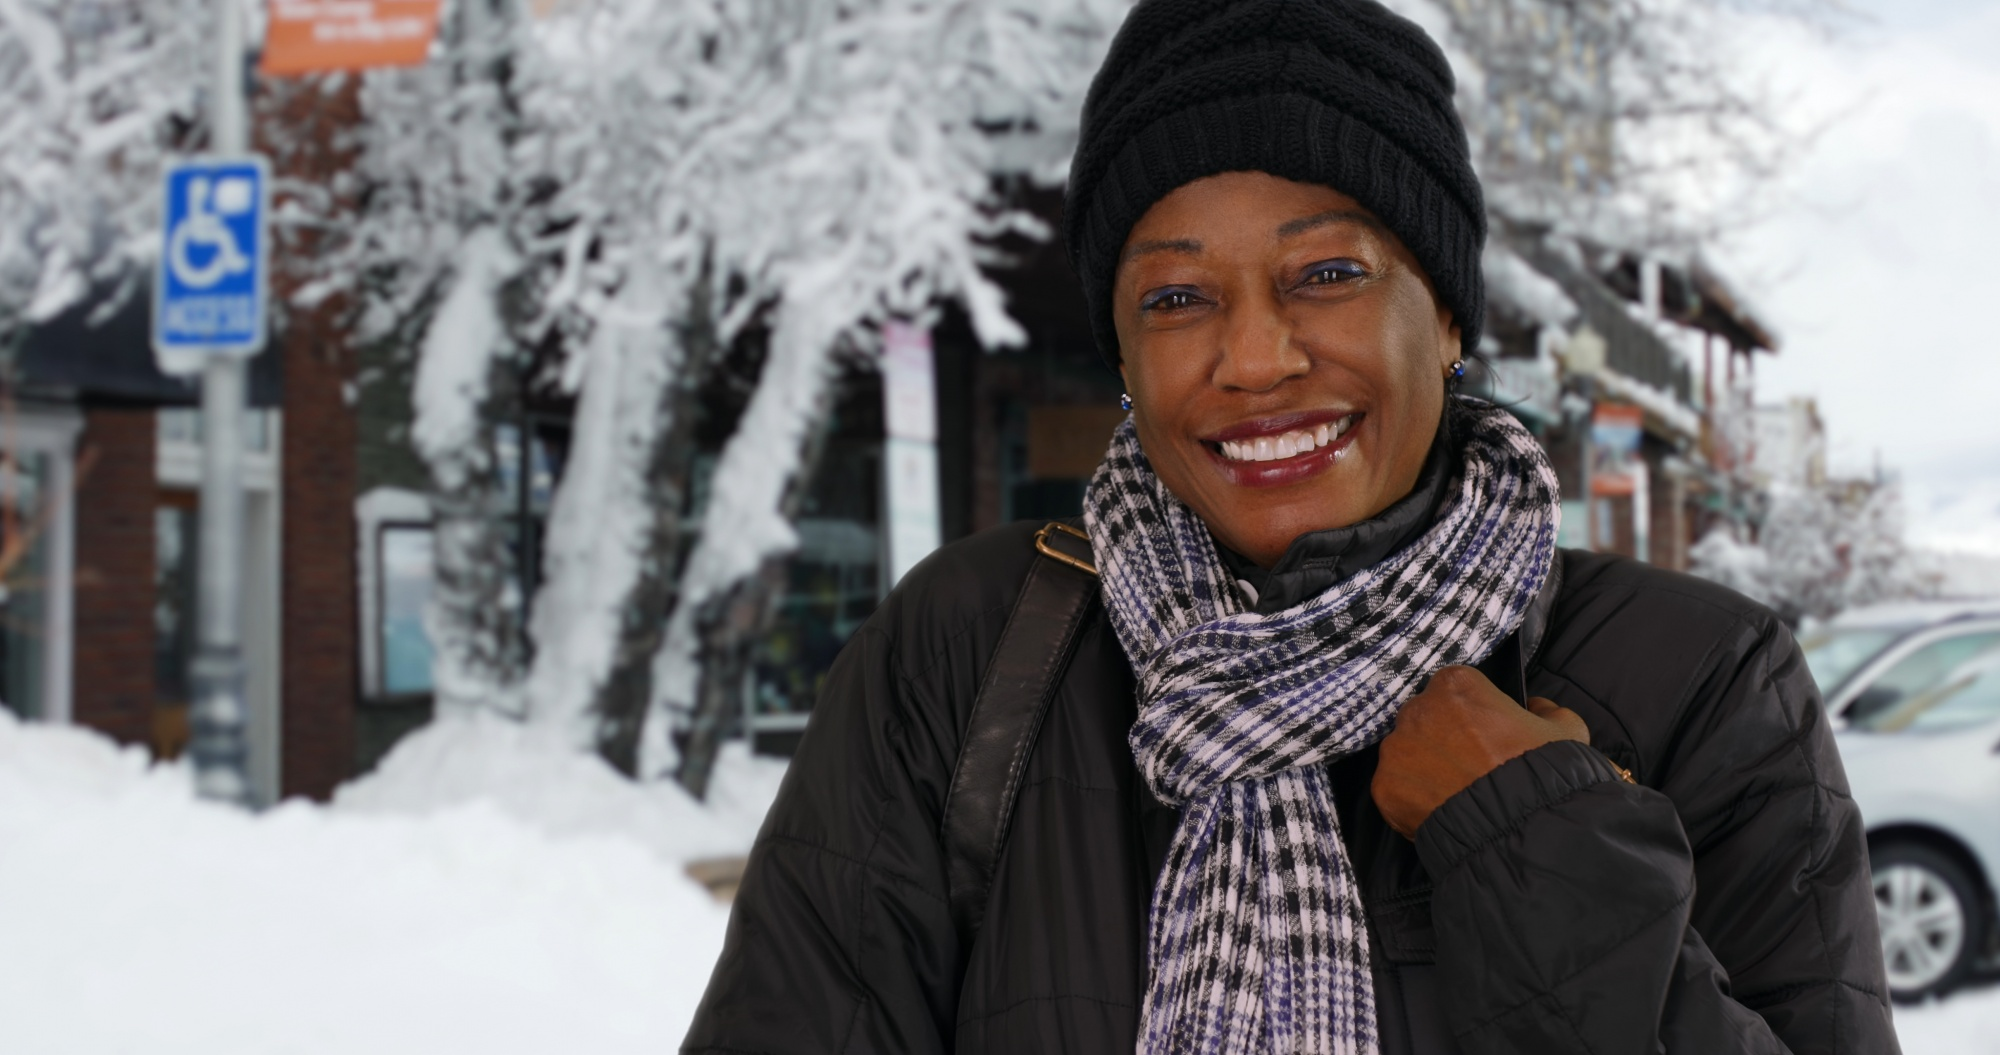 benefits of being outside during winter, Black woman in a black hat and jacket on a snowy sidewalk